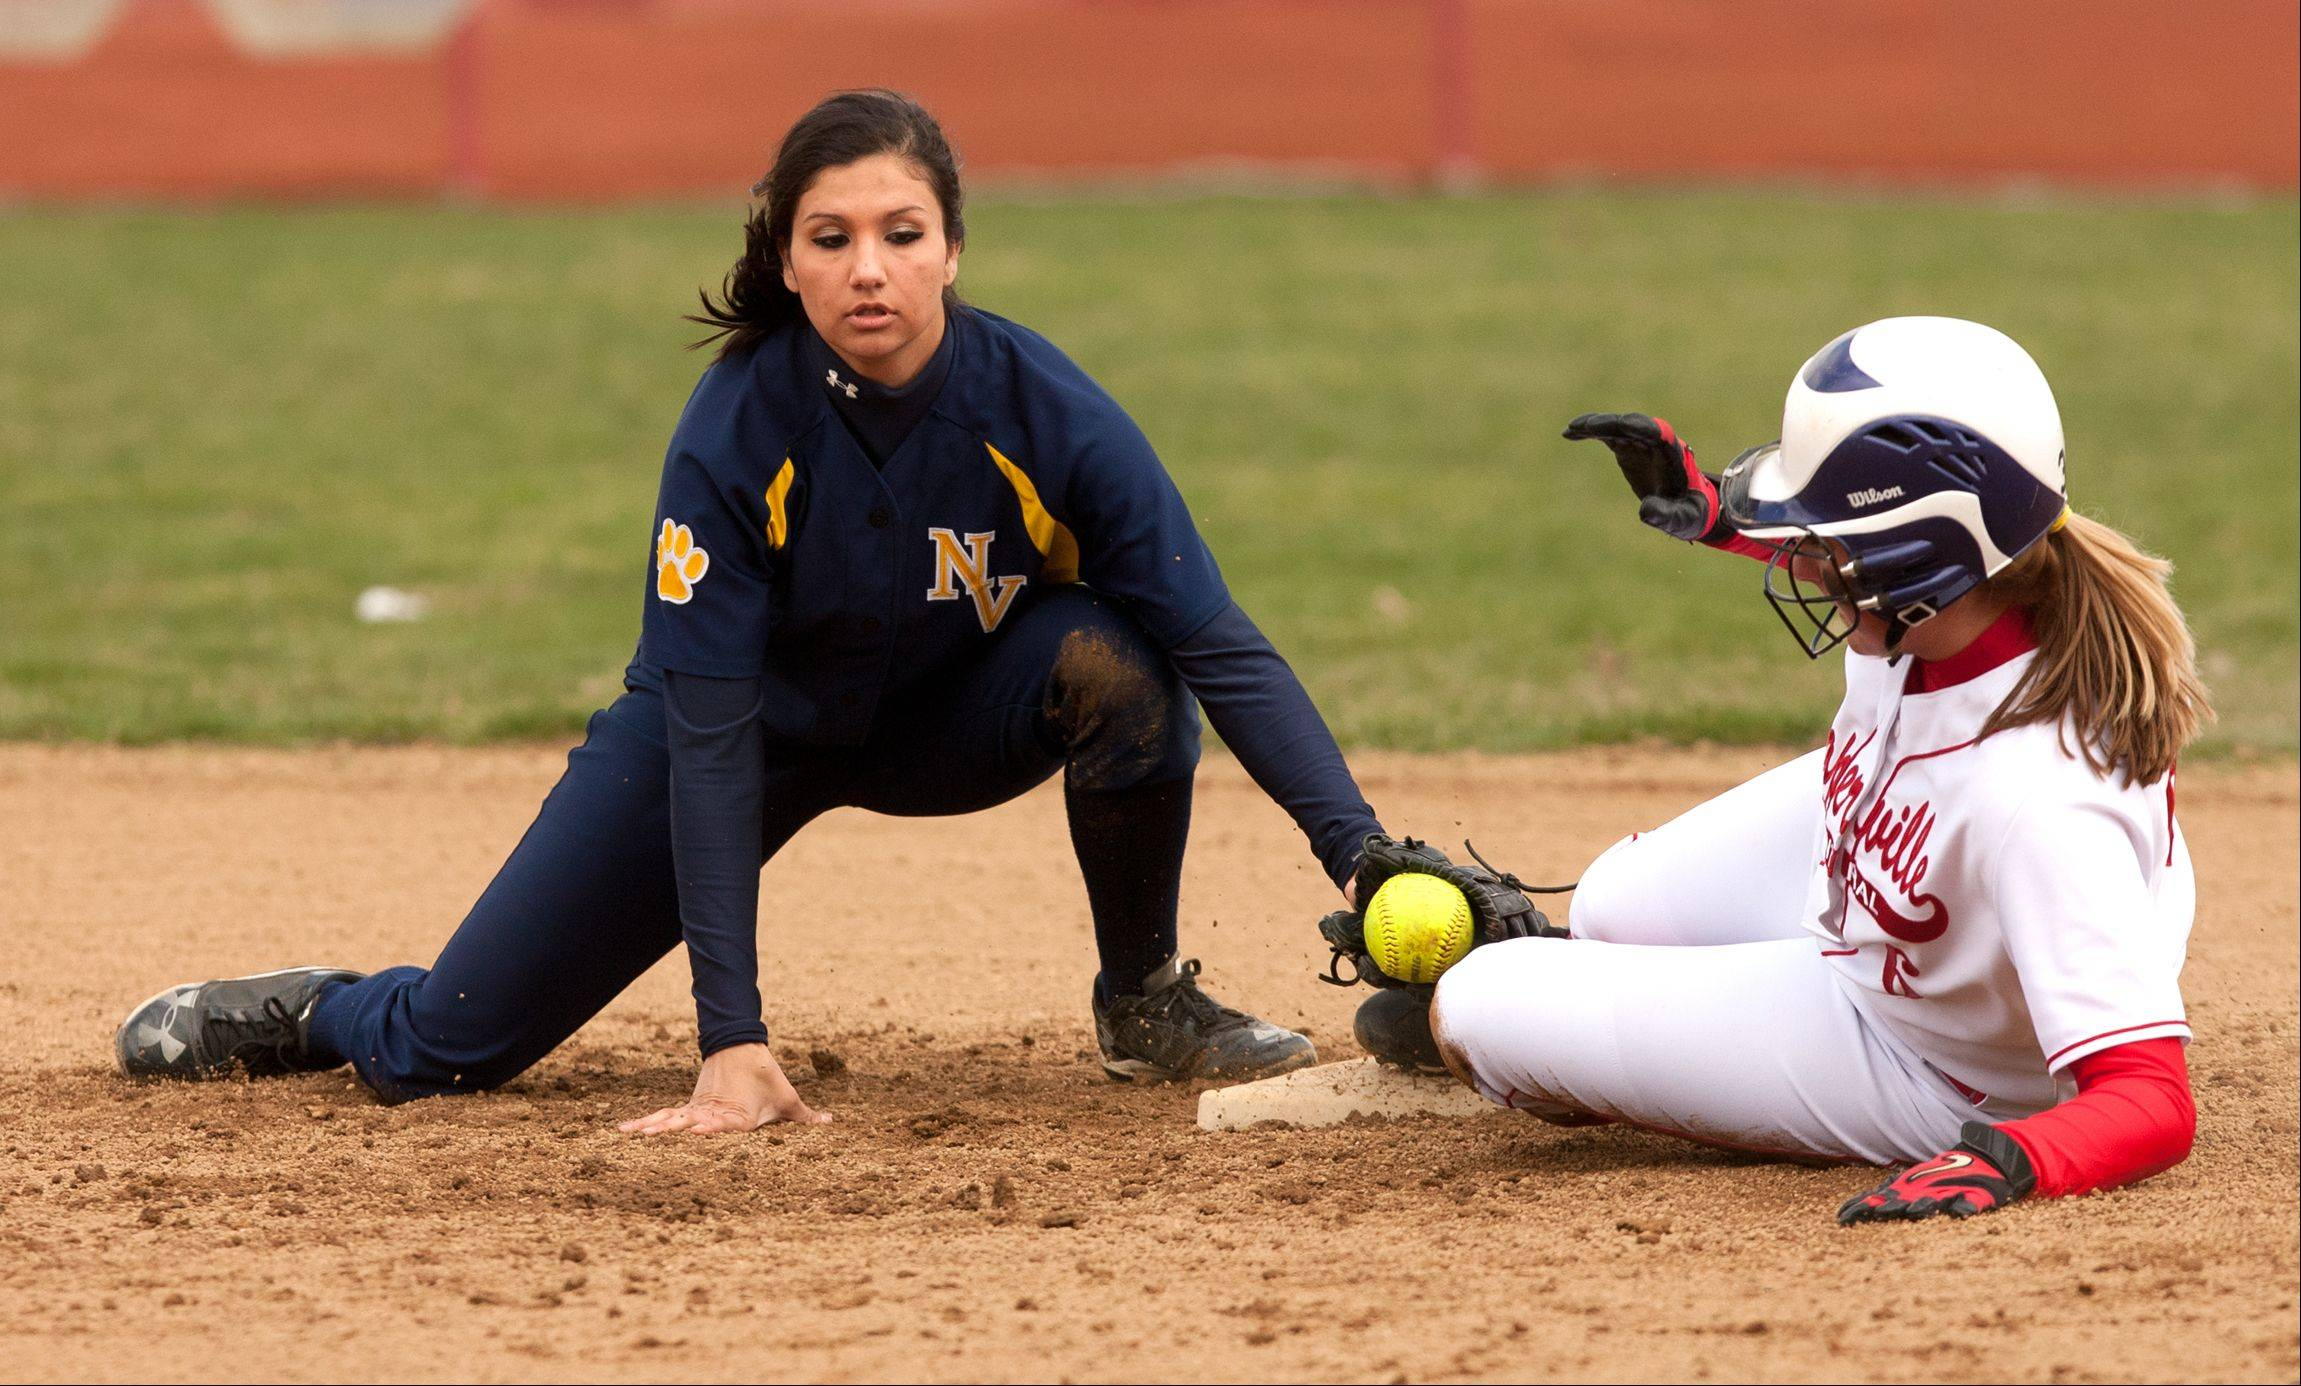 Naperville Central's Megan Nerger slides safely under the tag of Neuqua Valley's Jamie O'Brien on Saturday at Naperville Central.